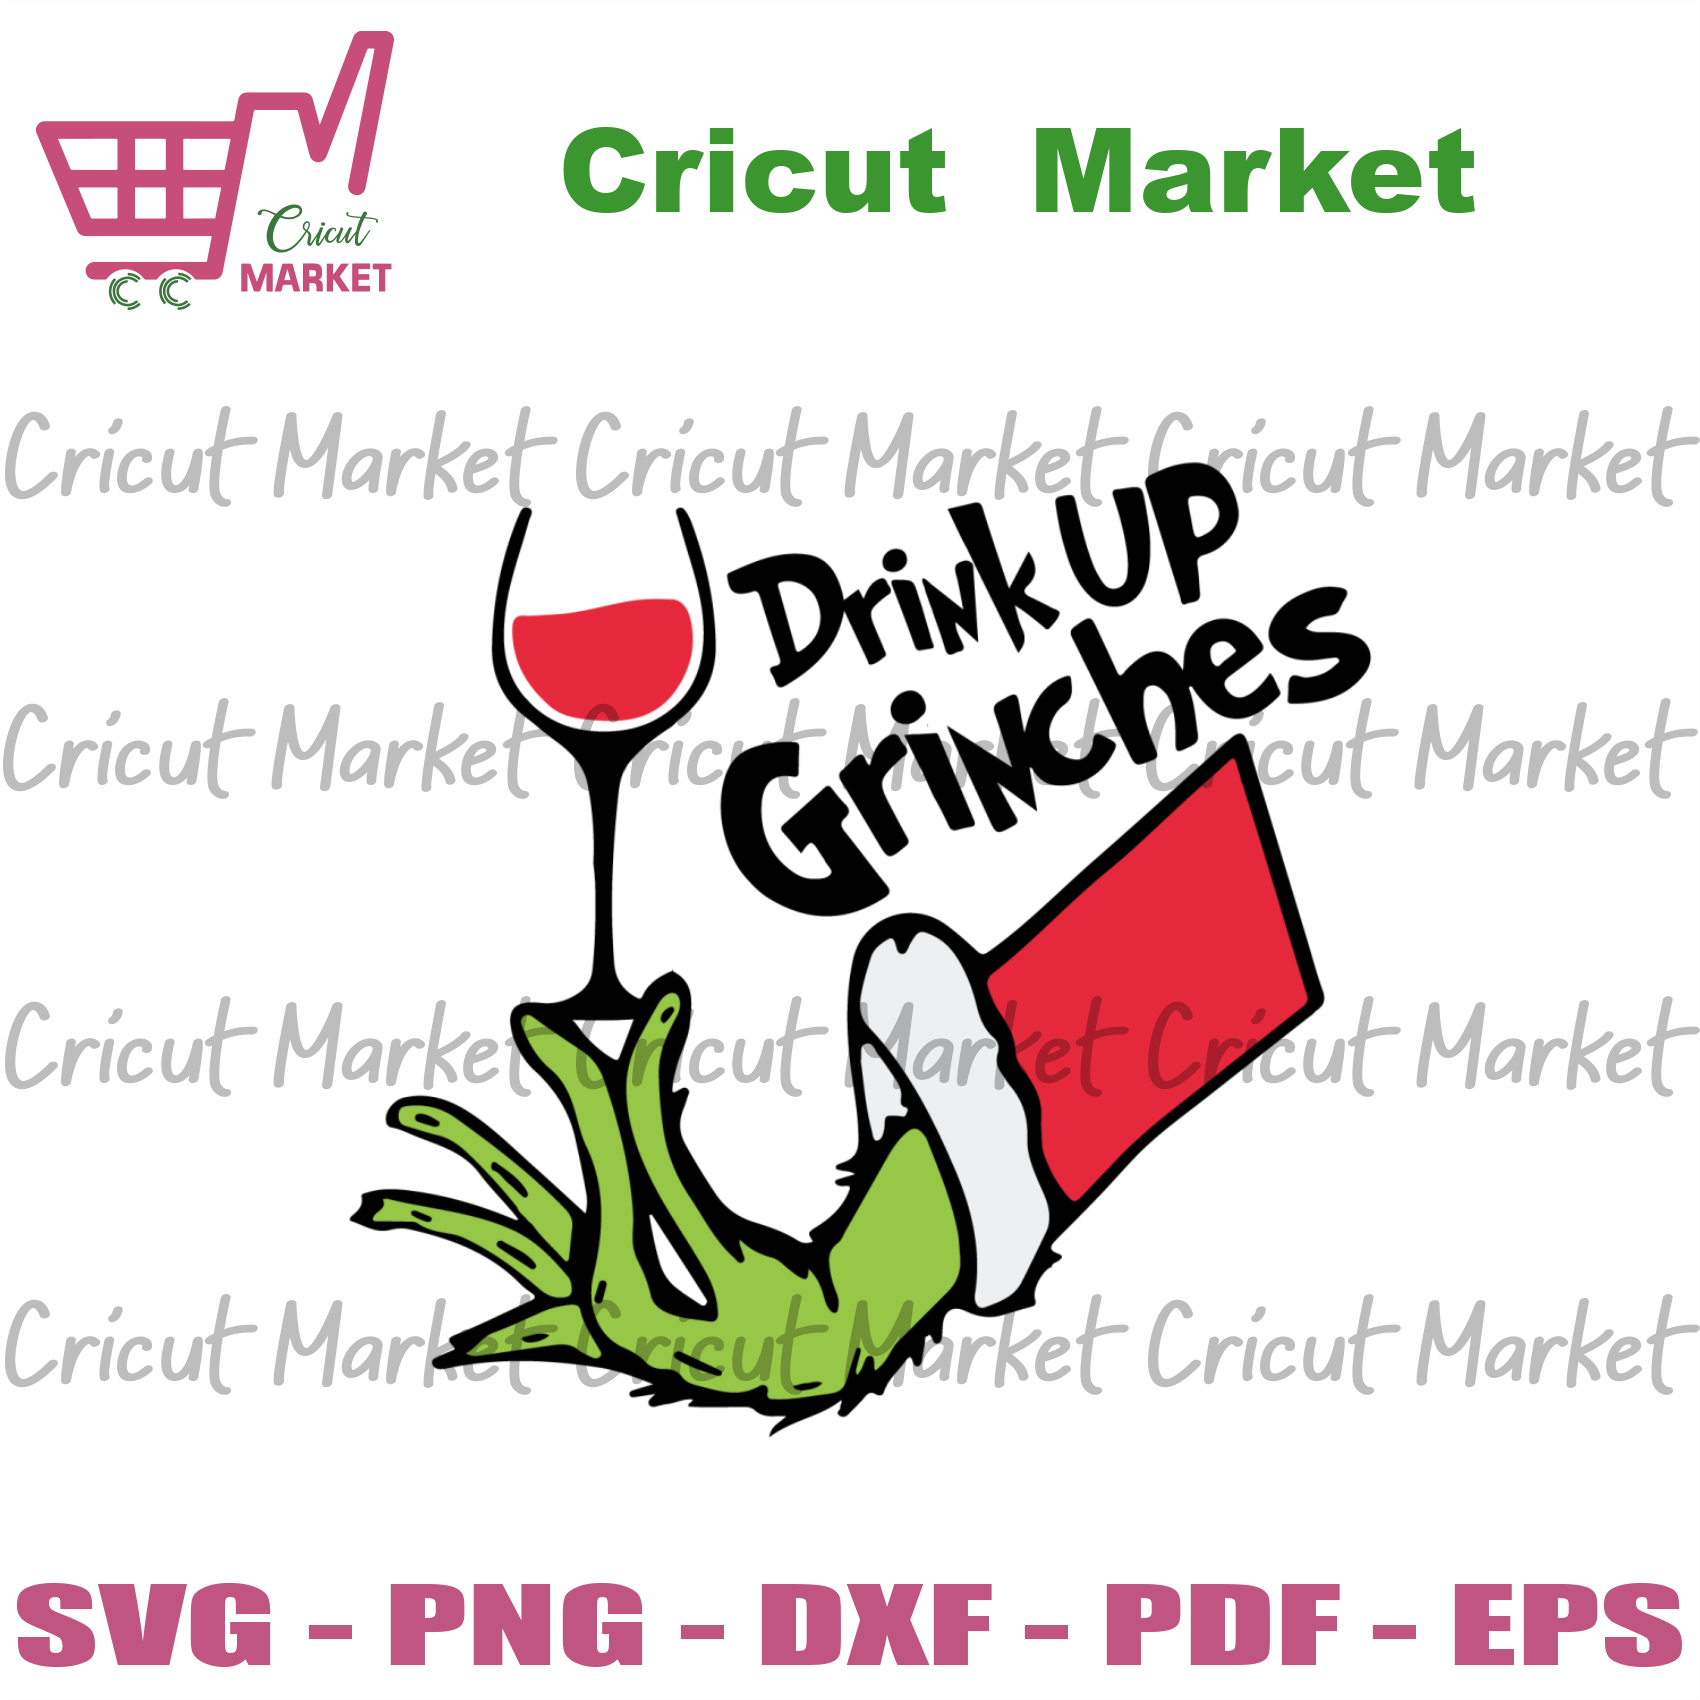 Drink up grinches, christmas svg, xmas svg, grinch svg, christmas grinch svg, grinch hand svg, wine svg, christmas gift svg, christmas party, grinches svg, grinch gift, champagne svg, wine gl